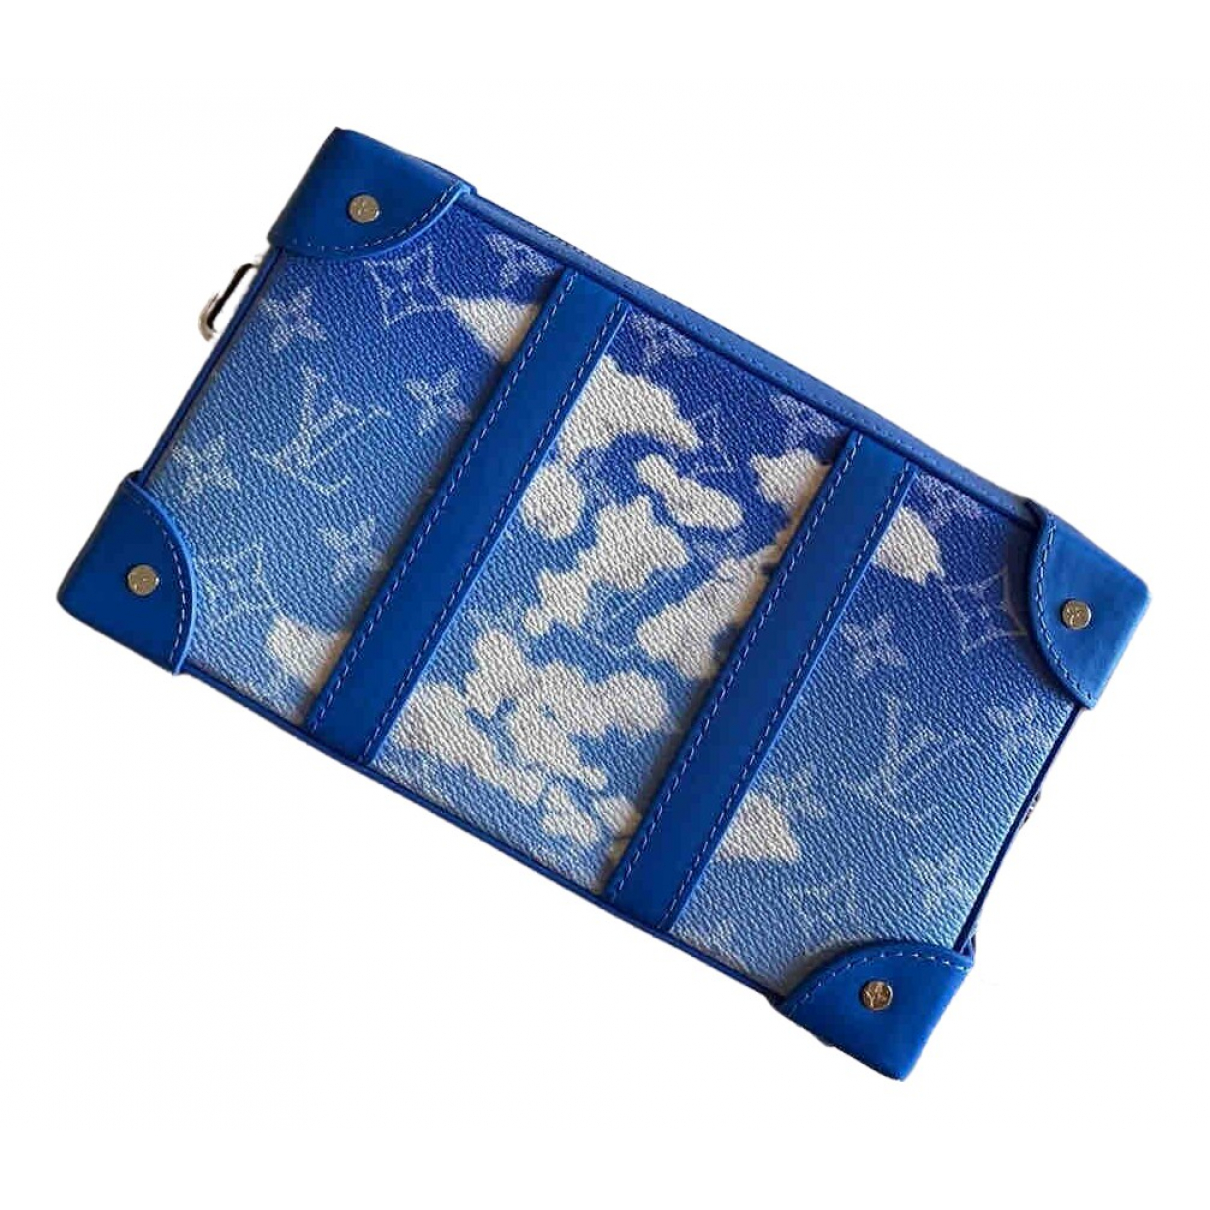 Louis Vuitton Malle Trunk Blue Cloth Small bag, wallet & cases for Men \N